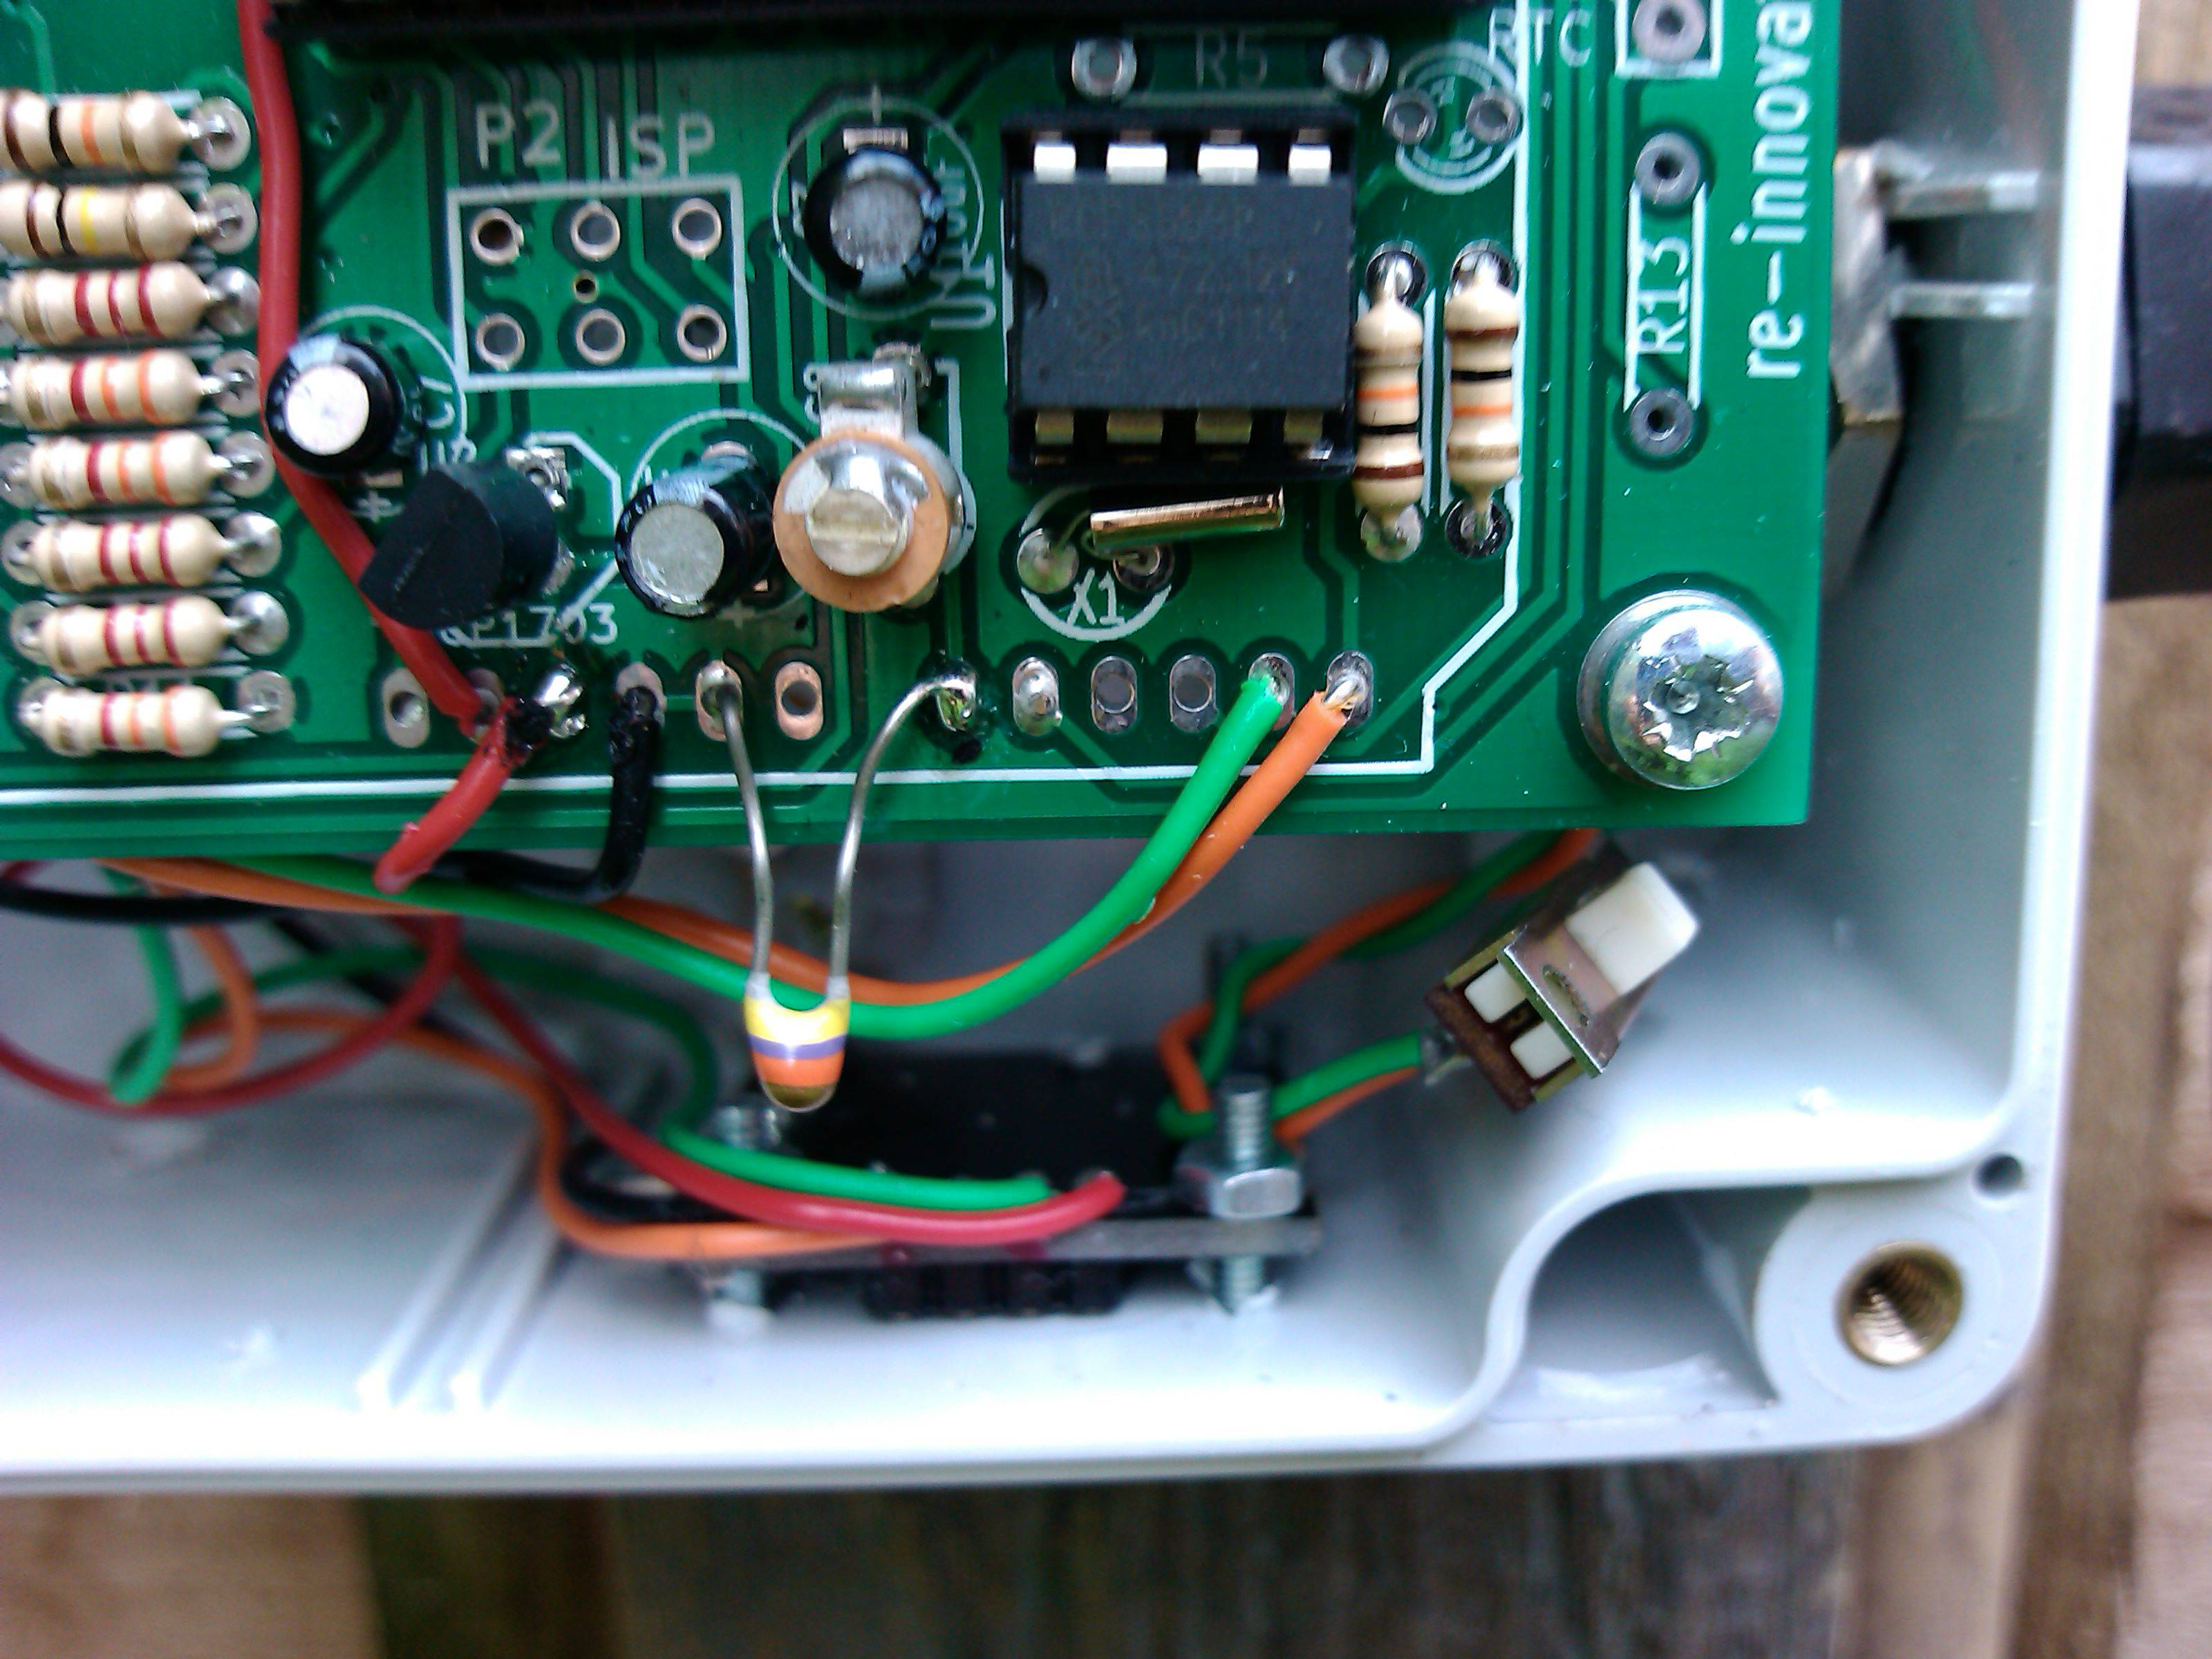 Low Cost Wind Datalogger Renewable Energy Innovation Small Turbine Wiring Schematic Prototype Version 2 Photos